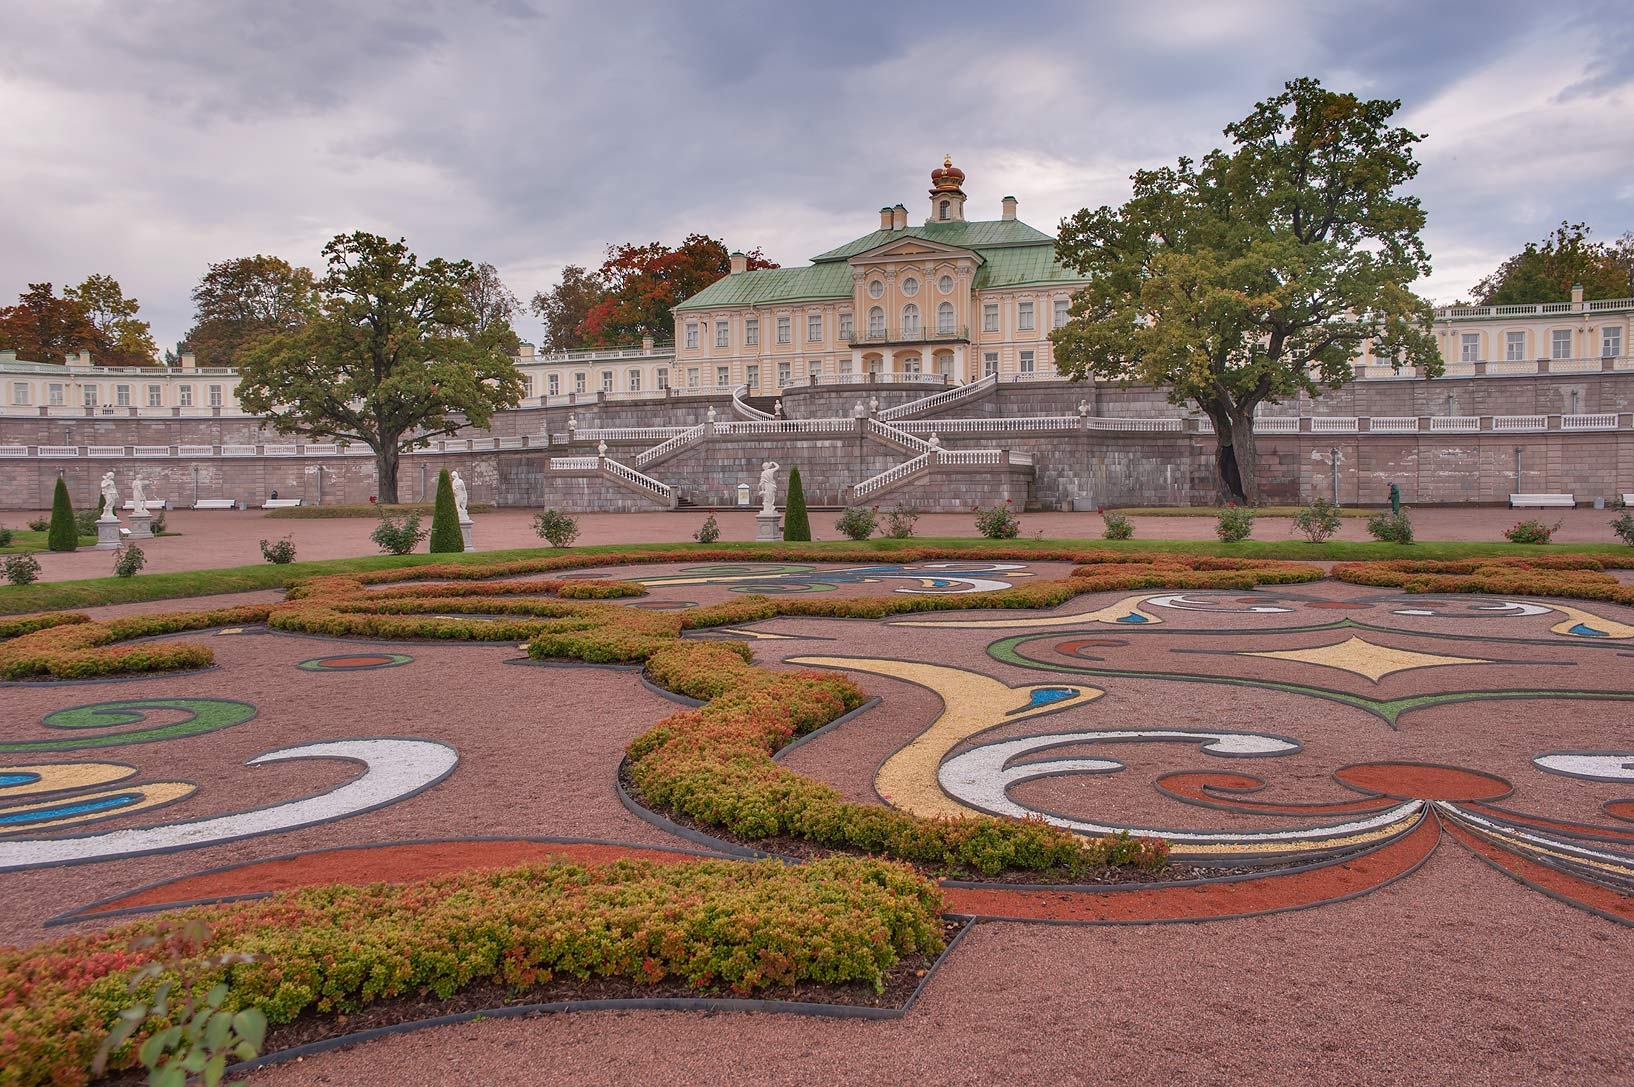 Lower Garden near Menshikov's Palace. Oranienbaum...a suburb of St.Petersburg, Russia